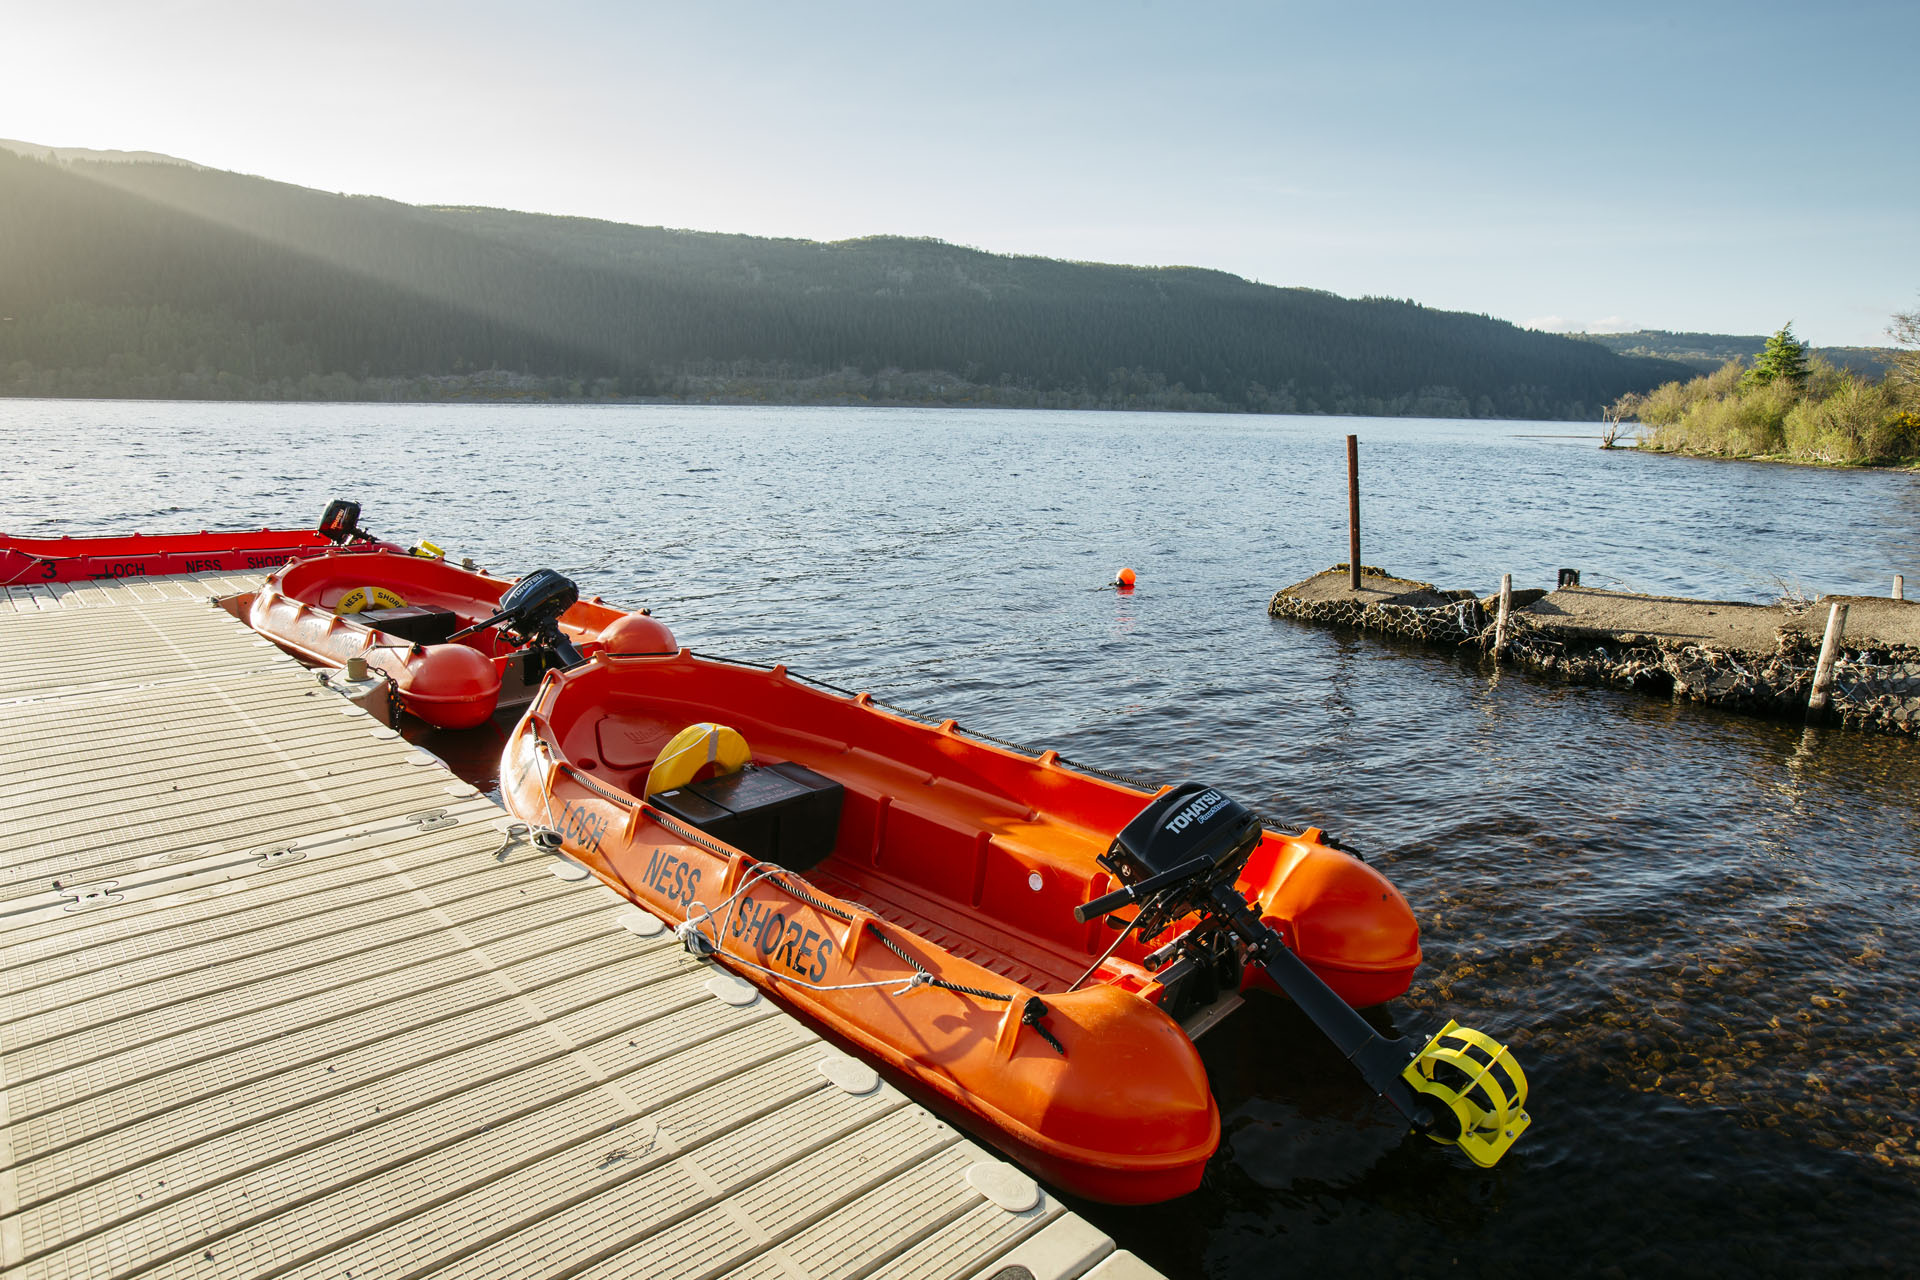 Loch Ness Karte.Loch Ness Shores Camping And Caravanning Club Site The Camping